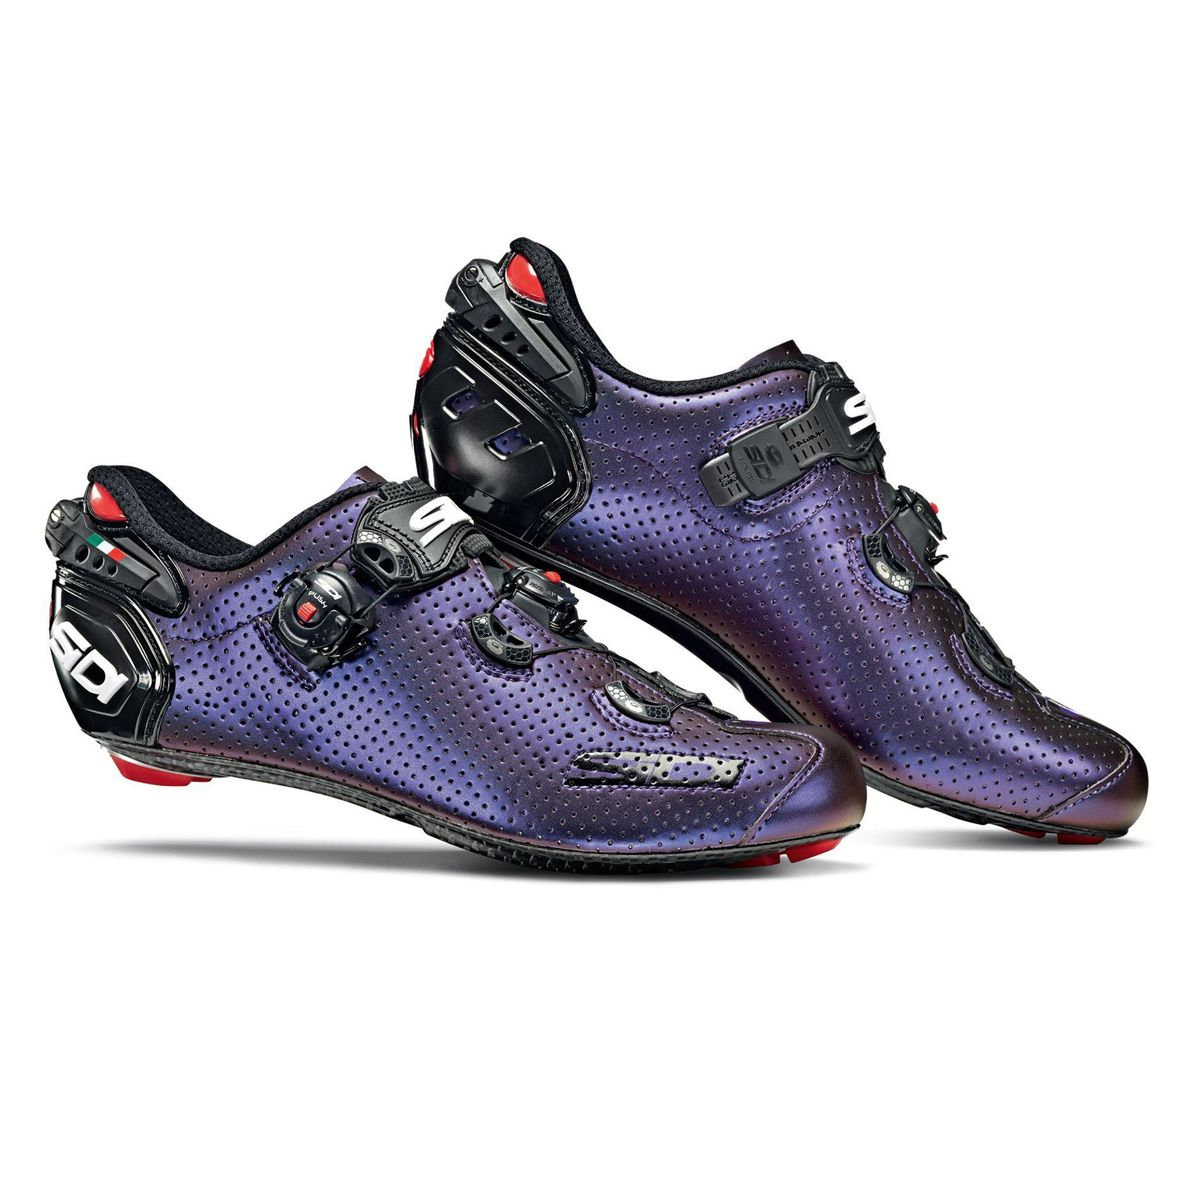 SIDI WIRE 2 CARBON AIR LTD EDITION CYCLING SHOES